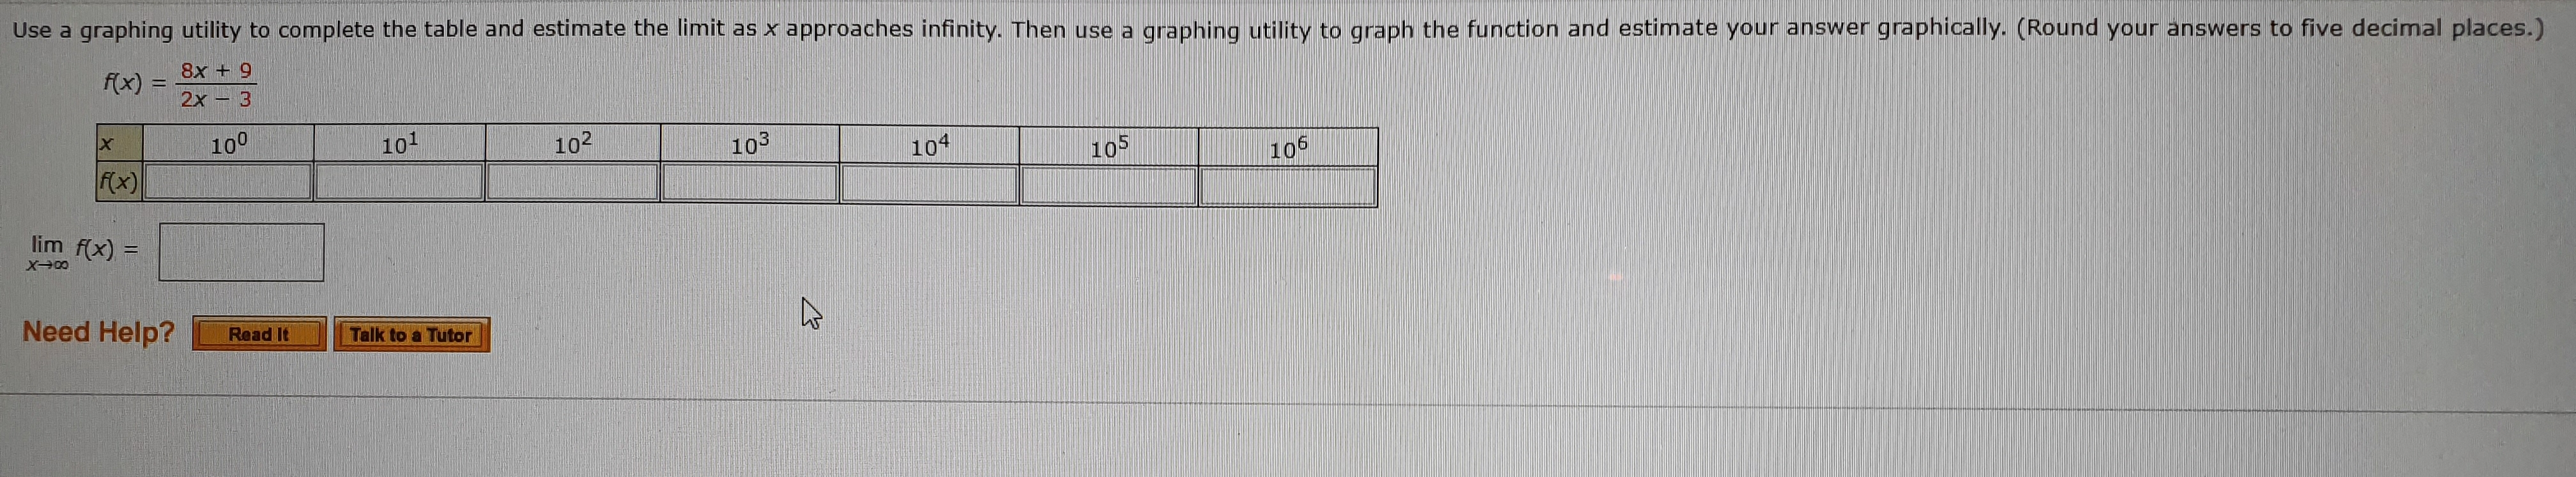 Use a graphing utility to complete the table and estimate the limit as x approaches infinity. Then use a graphing utility to graph the function and estimate your answer graphically. (Round your answers to five decimal places.) 8x + 9 2x3 f(x) 100 101 102 103 104 105 106 f(x) lim f(x) Need Help? Read It Talk to a Tutor